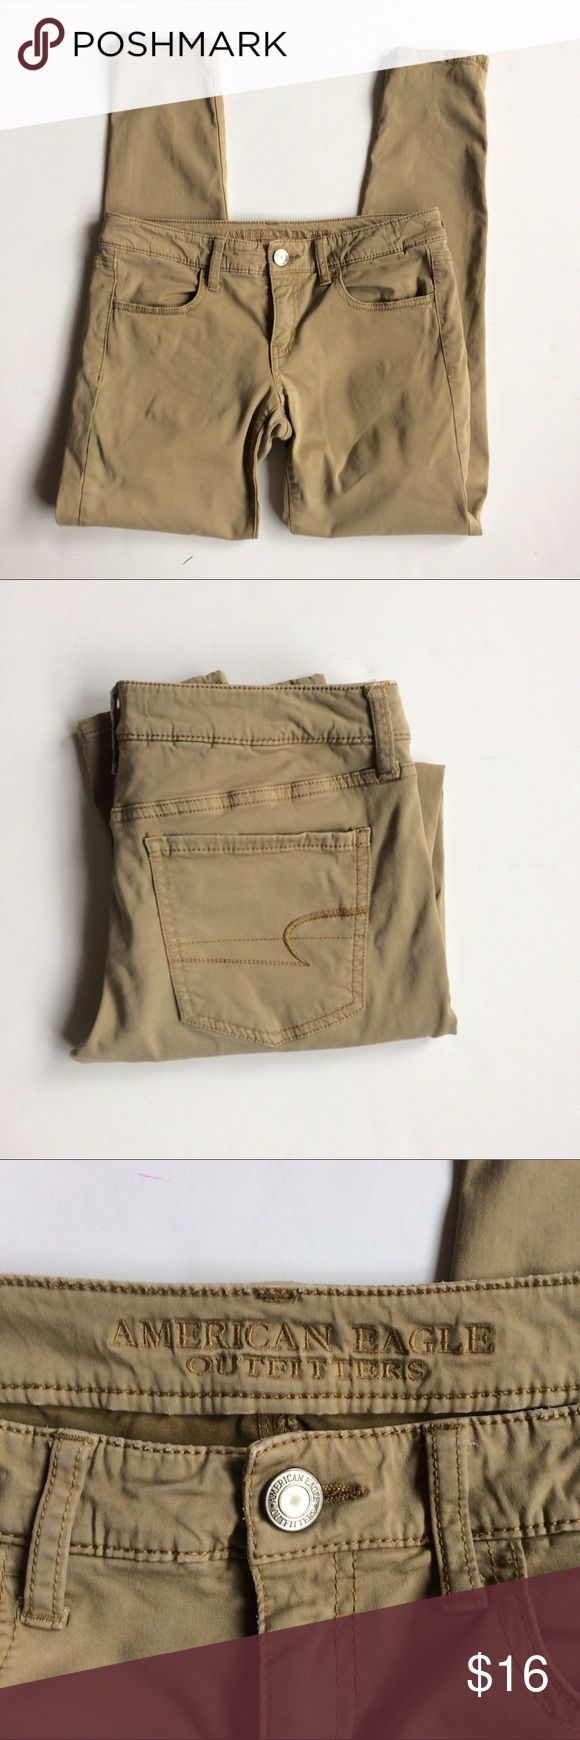 AE 🦅 Khaki Jeggings American Eagle outfitters khaki Jeggings in good used condition. With some slight color fading and wear on back pockets. Still have a lot of life left in them. Feel free to make an offer. American Eagle Outfitters Pants